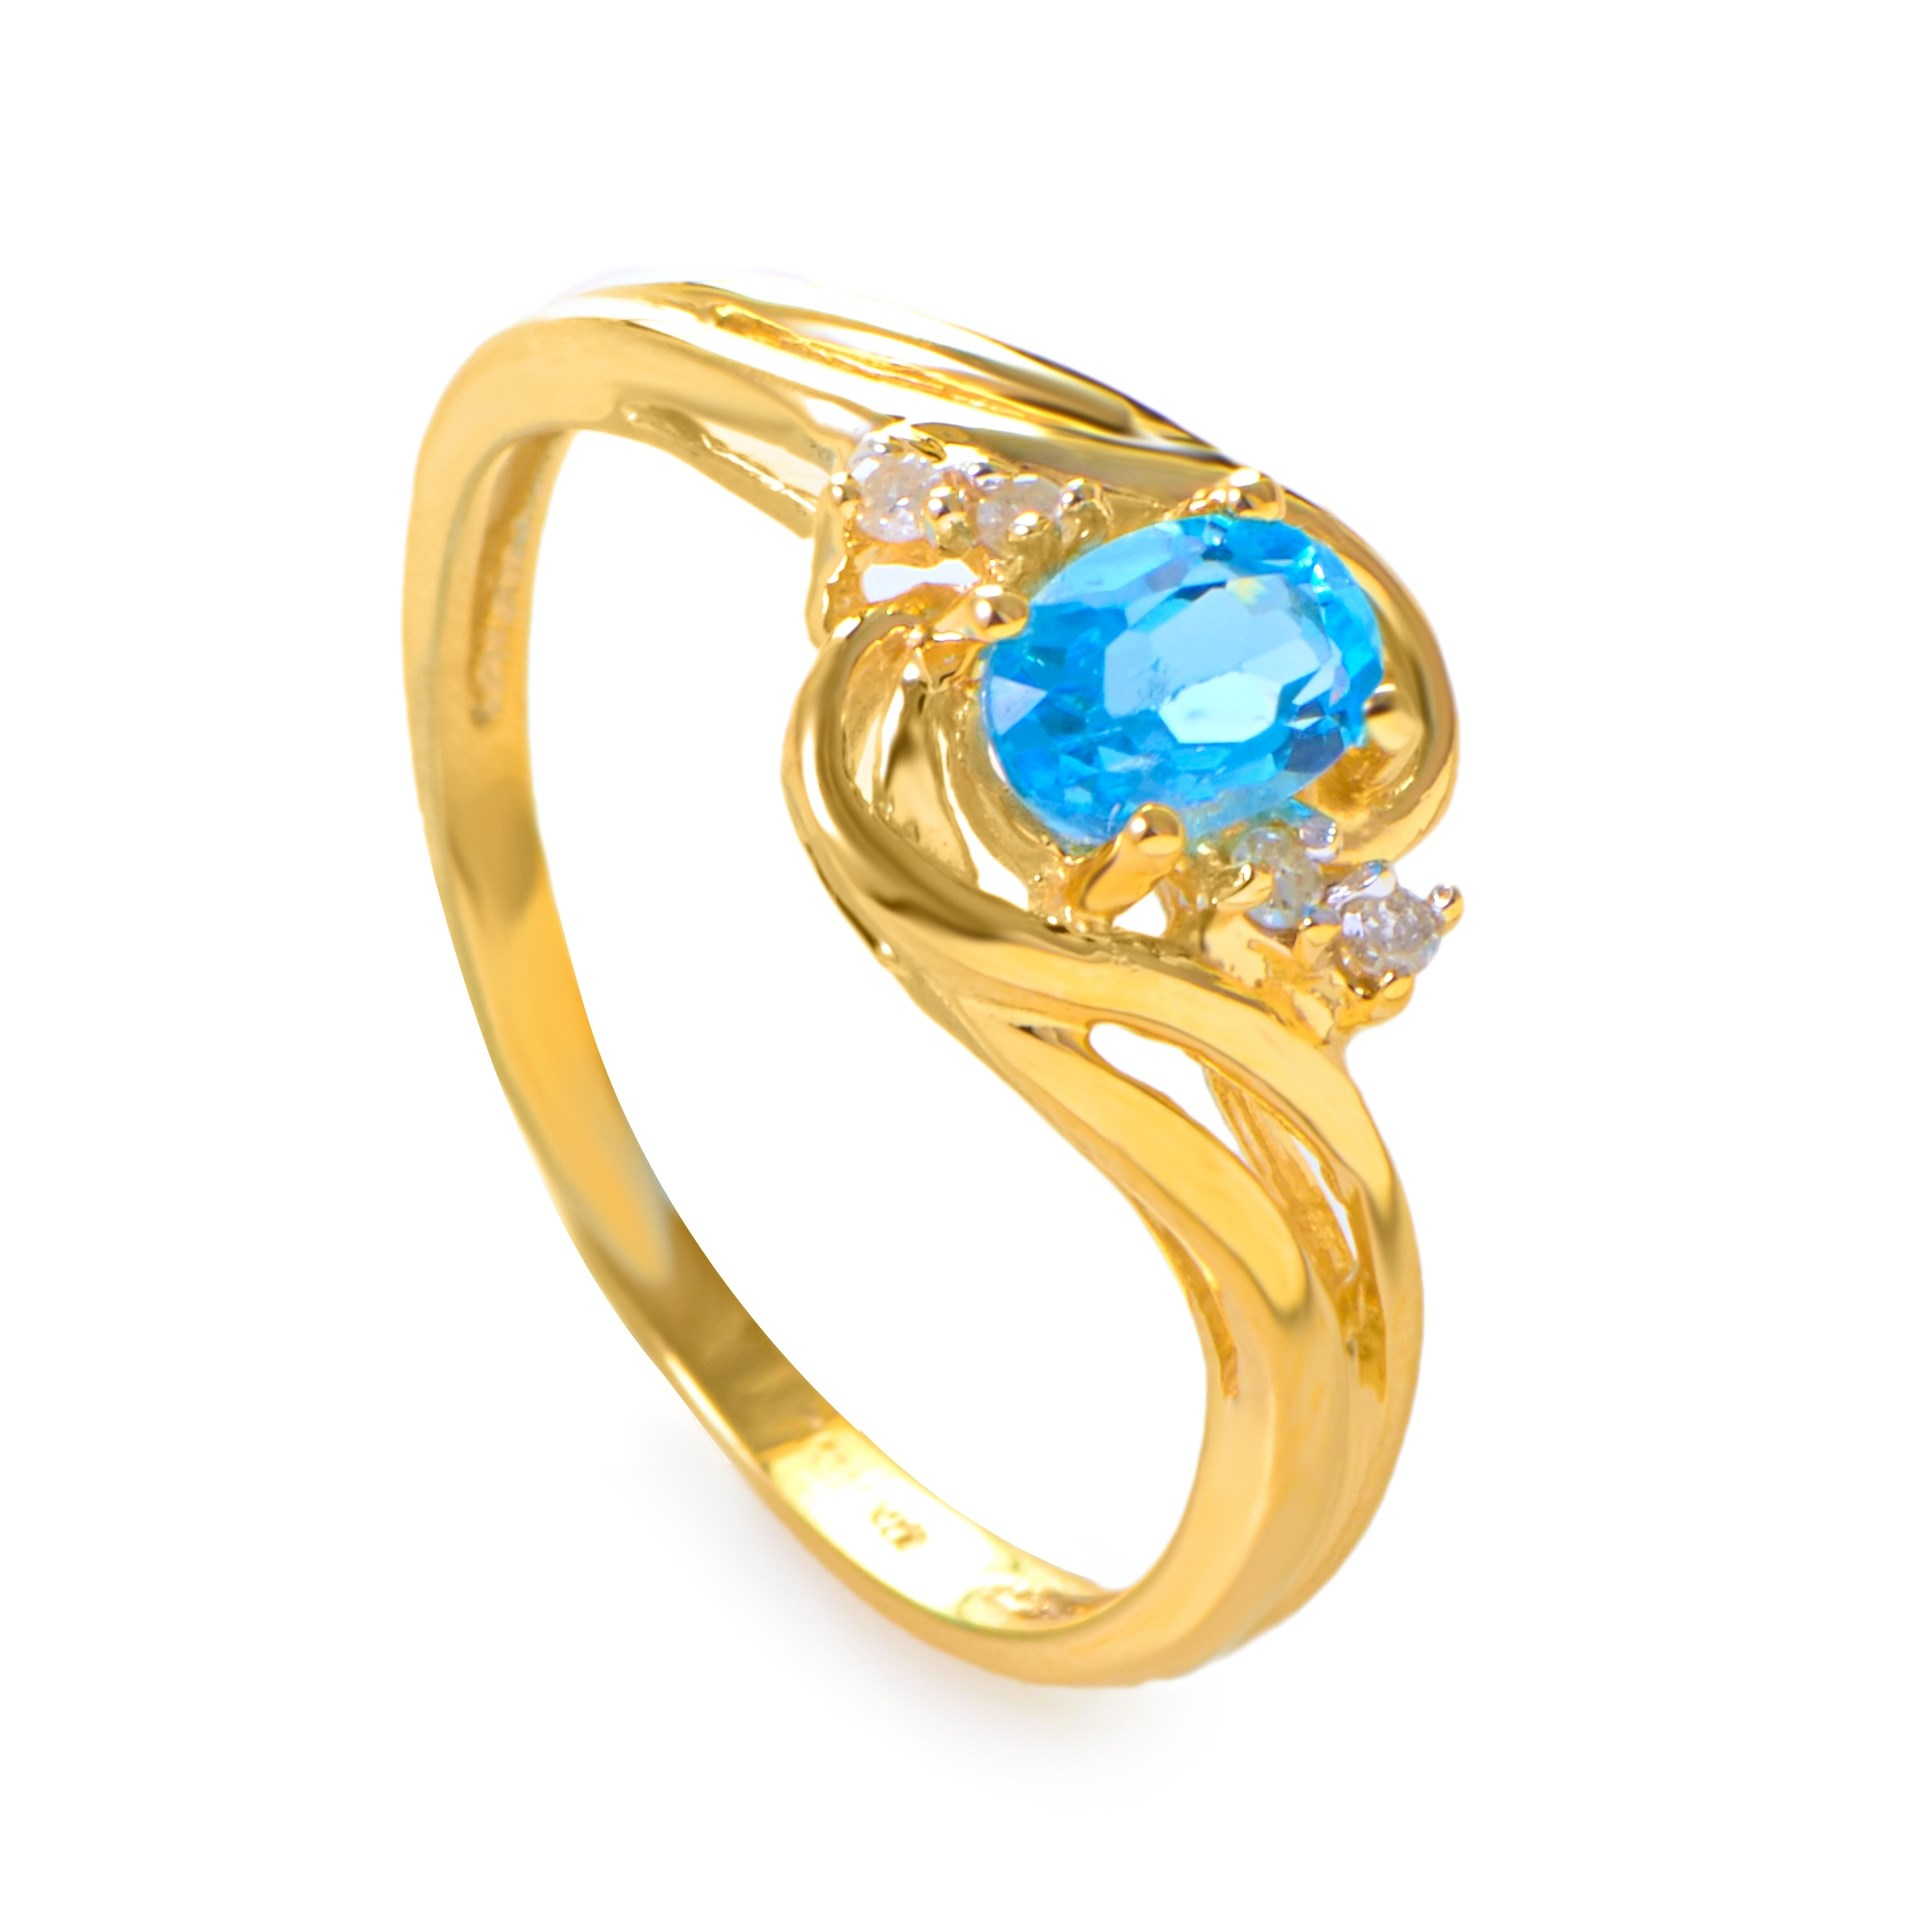 14K Yellow Gold Diamond and Topaz Ring RM1219-07